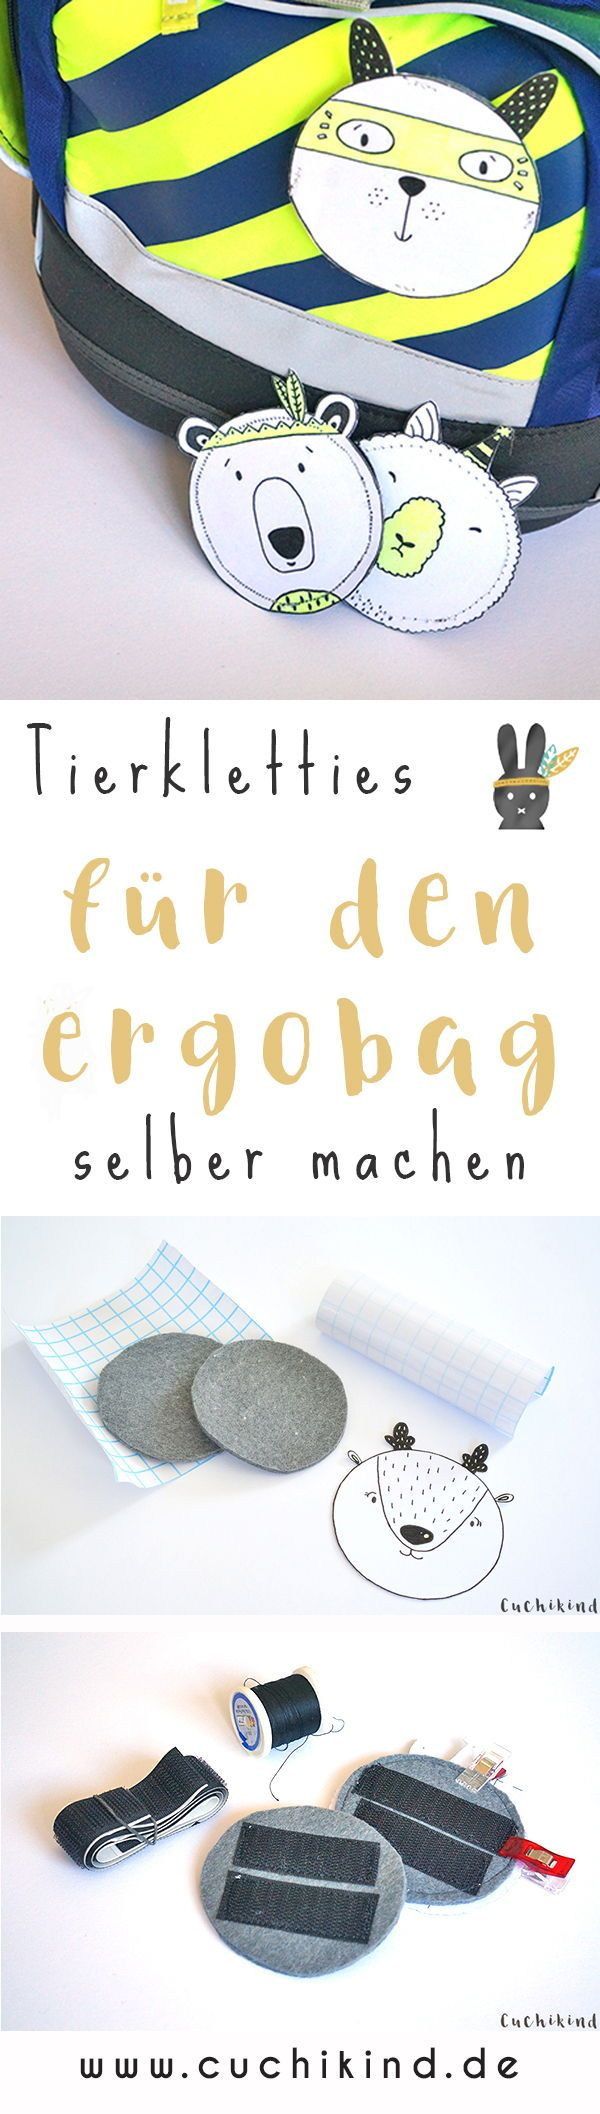 Tutorial: Kletties für den ergobag selber machen #projectstotry